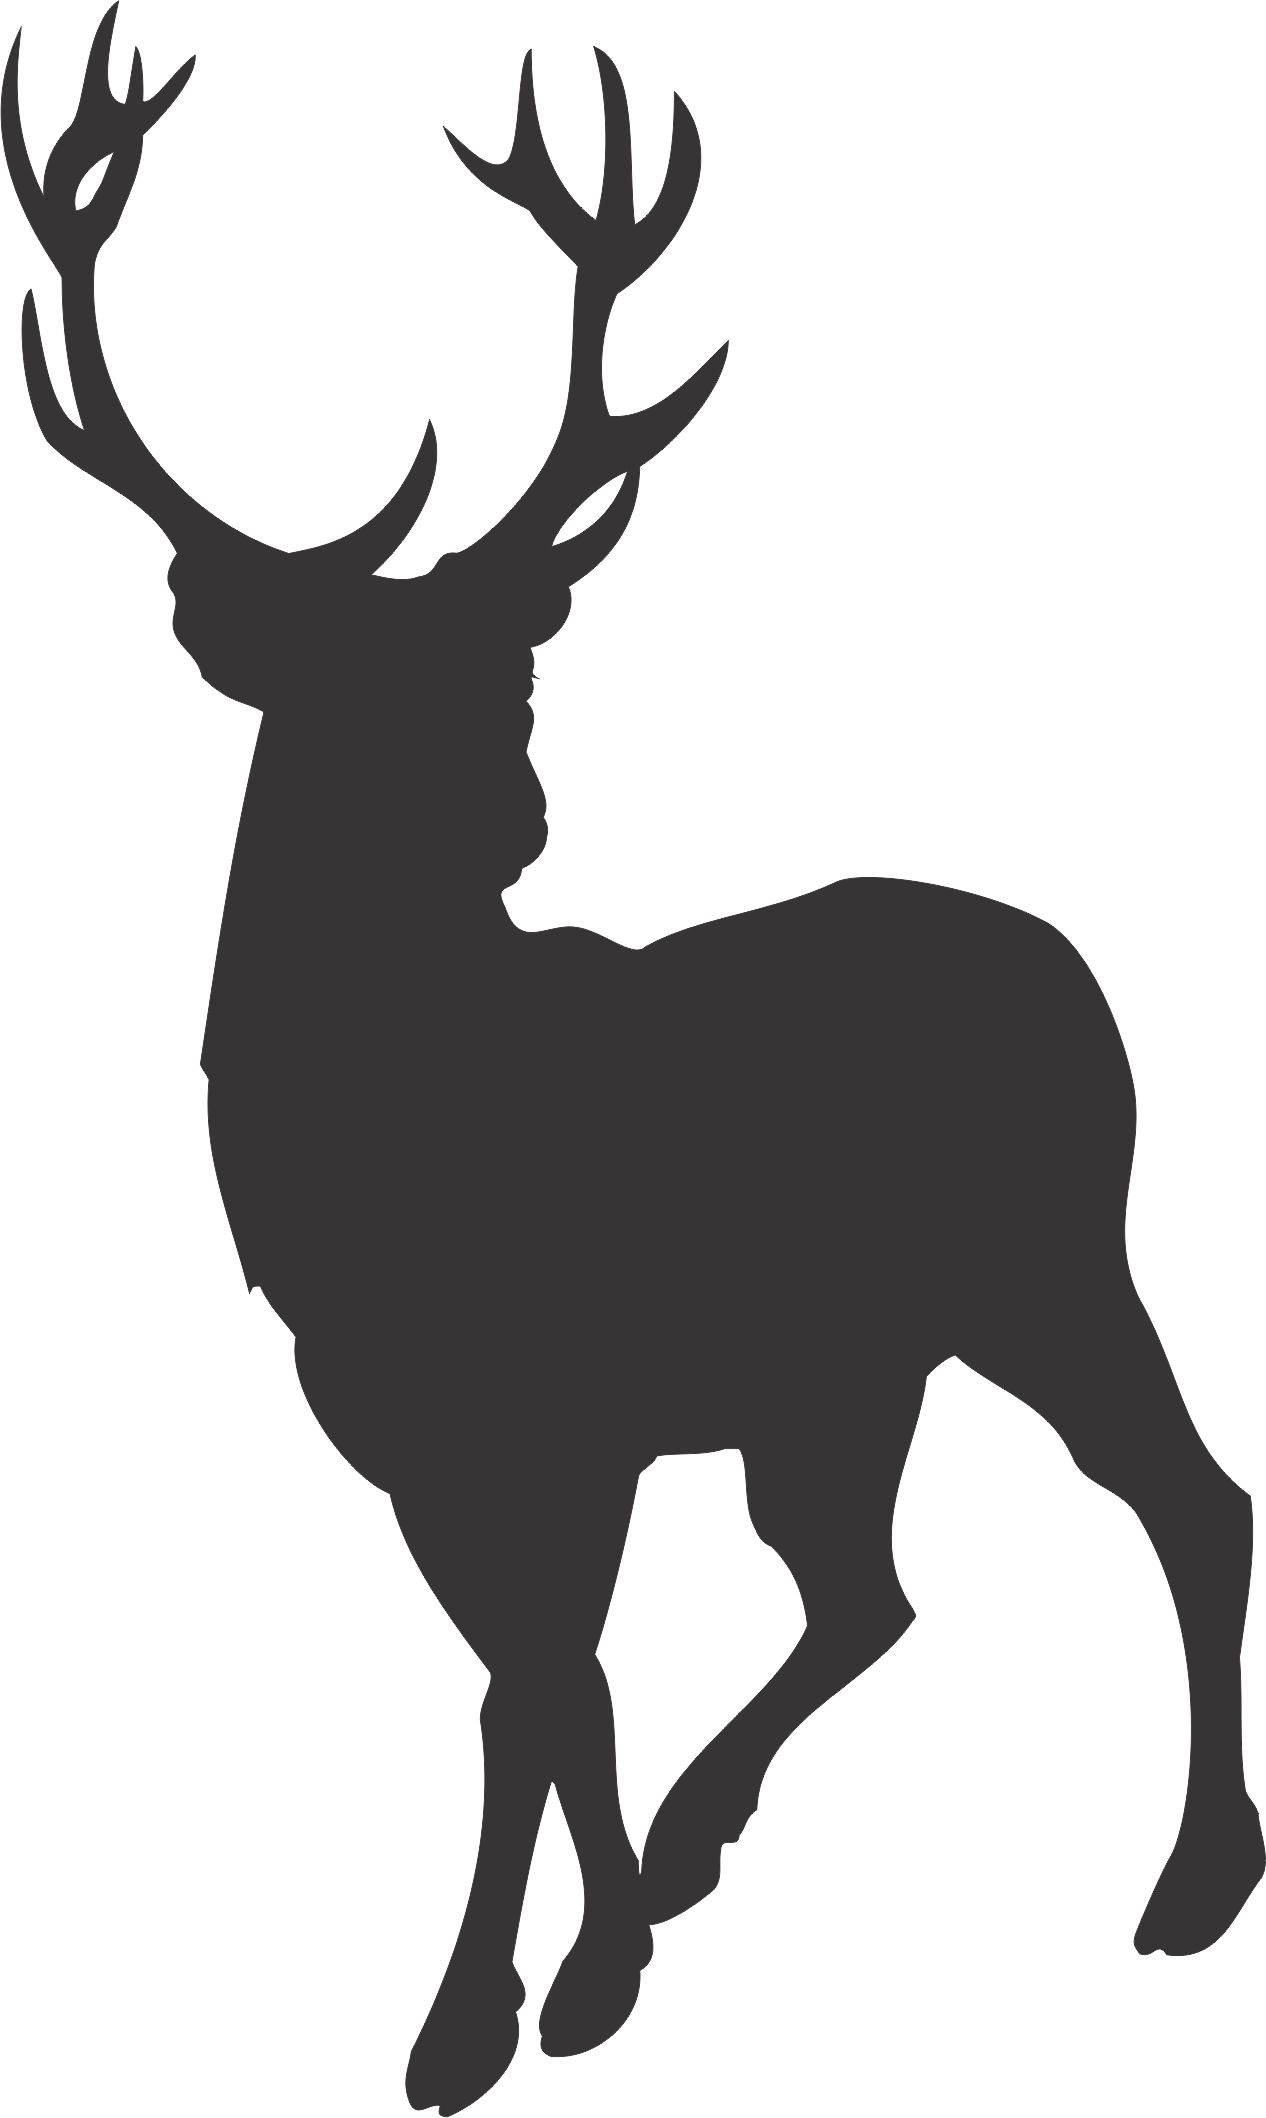 image relating to Free Printable Forest Animal Silhouettes referred to as Free of charge down load Stag Silhouette Clipart for your generation